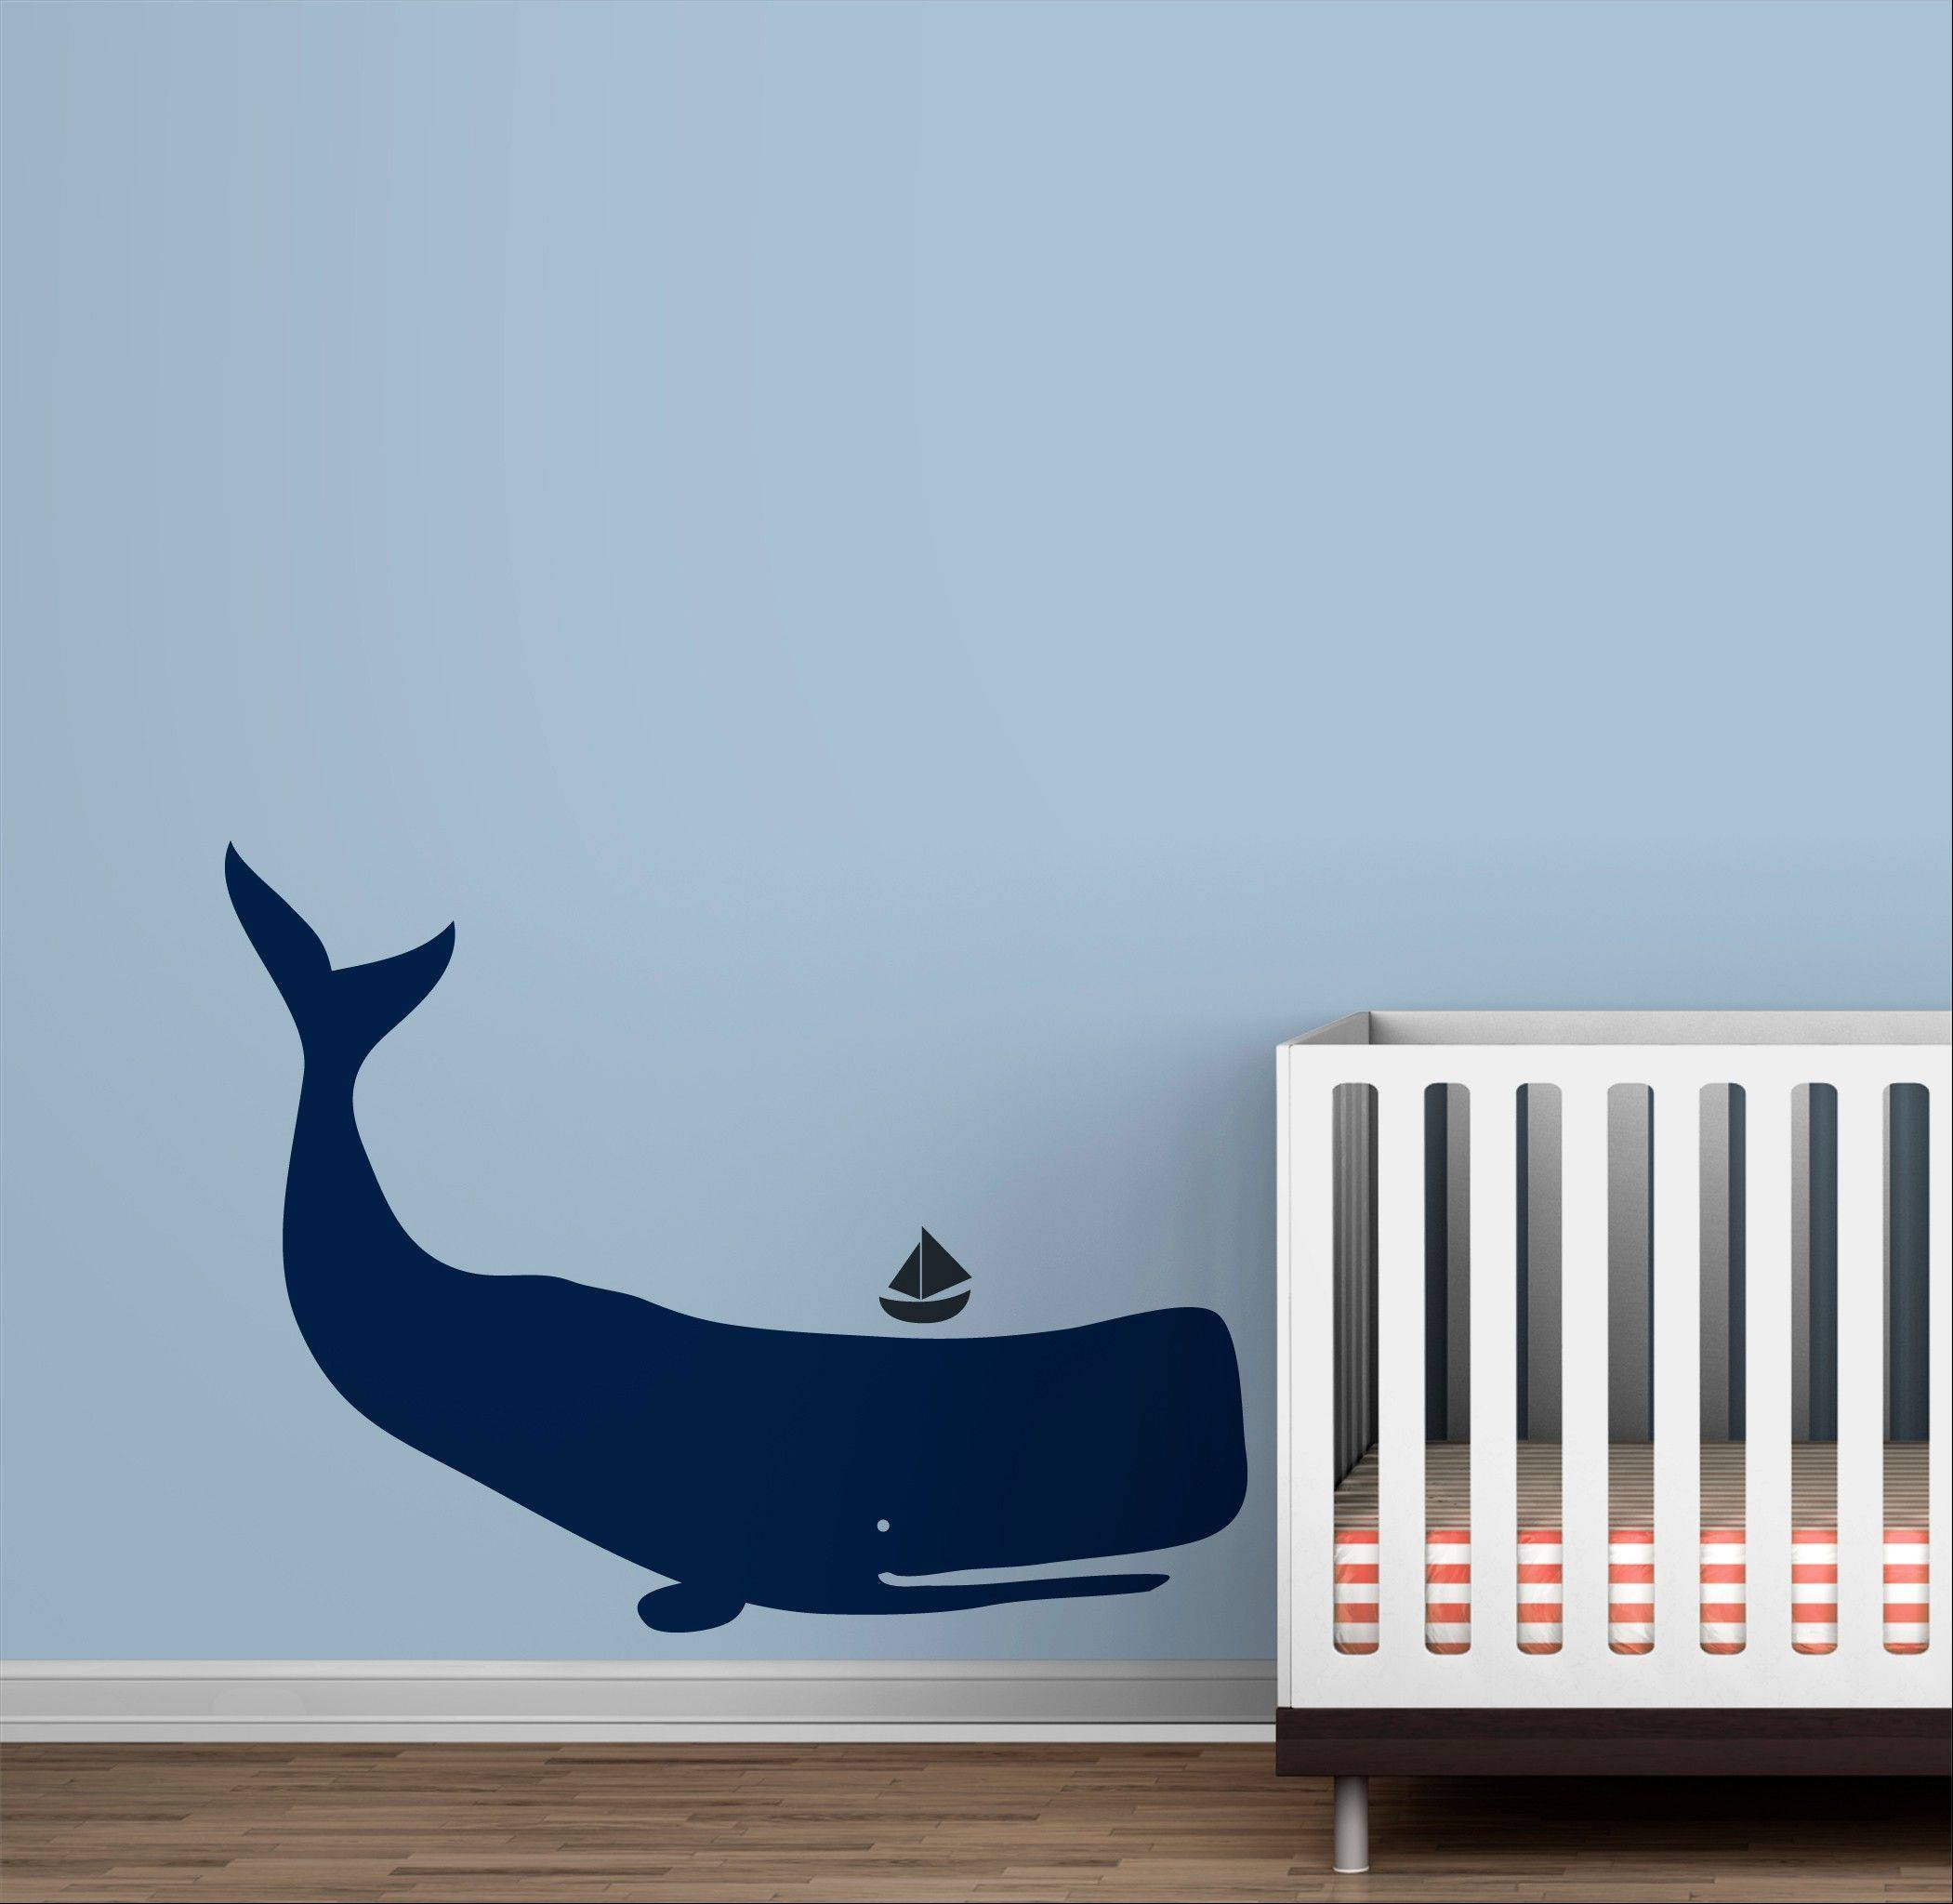 A whale decal from the Toronto-based LittleLion Studio. Think beyond the standard kitty-cat wall border or dino bedding; here are some decor ideas sophisticated enough to please style-minded parents, too.